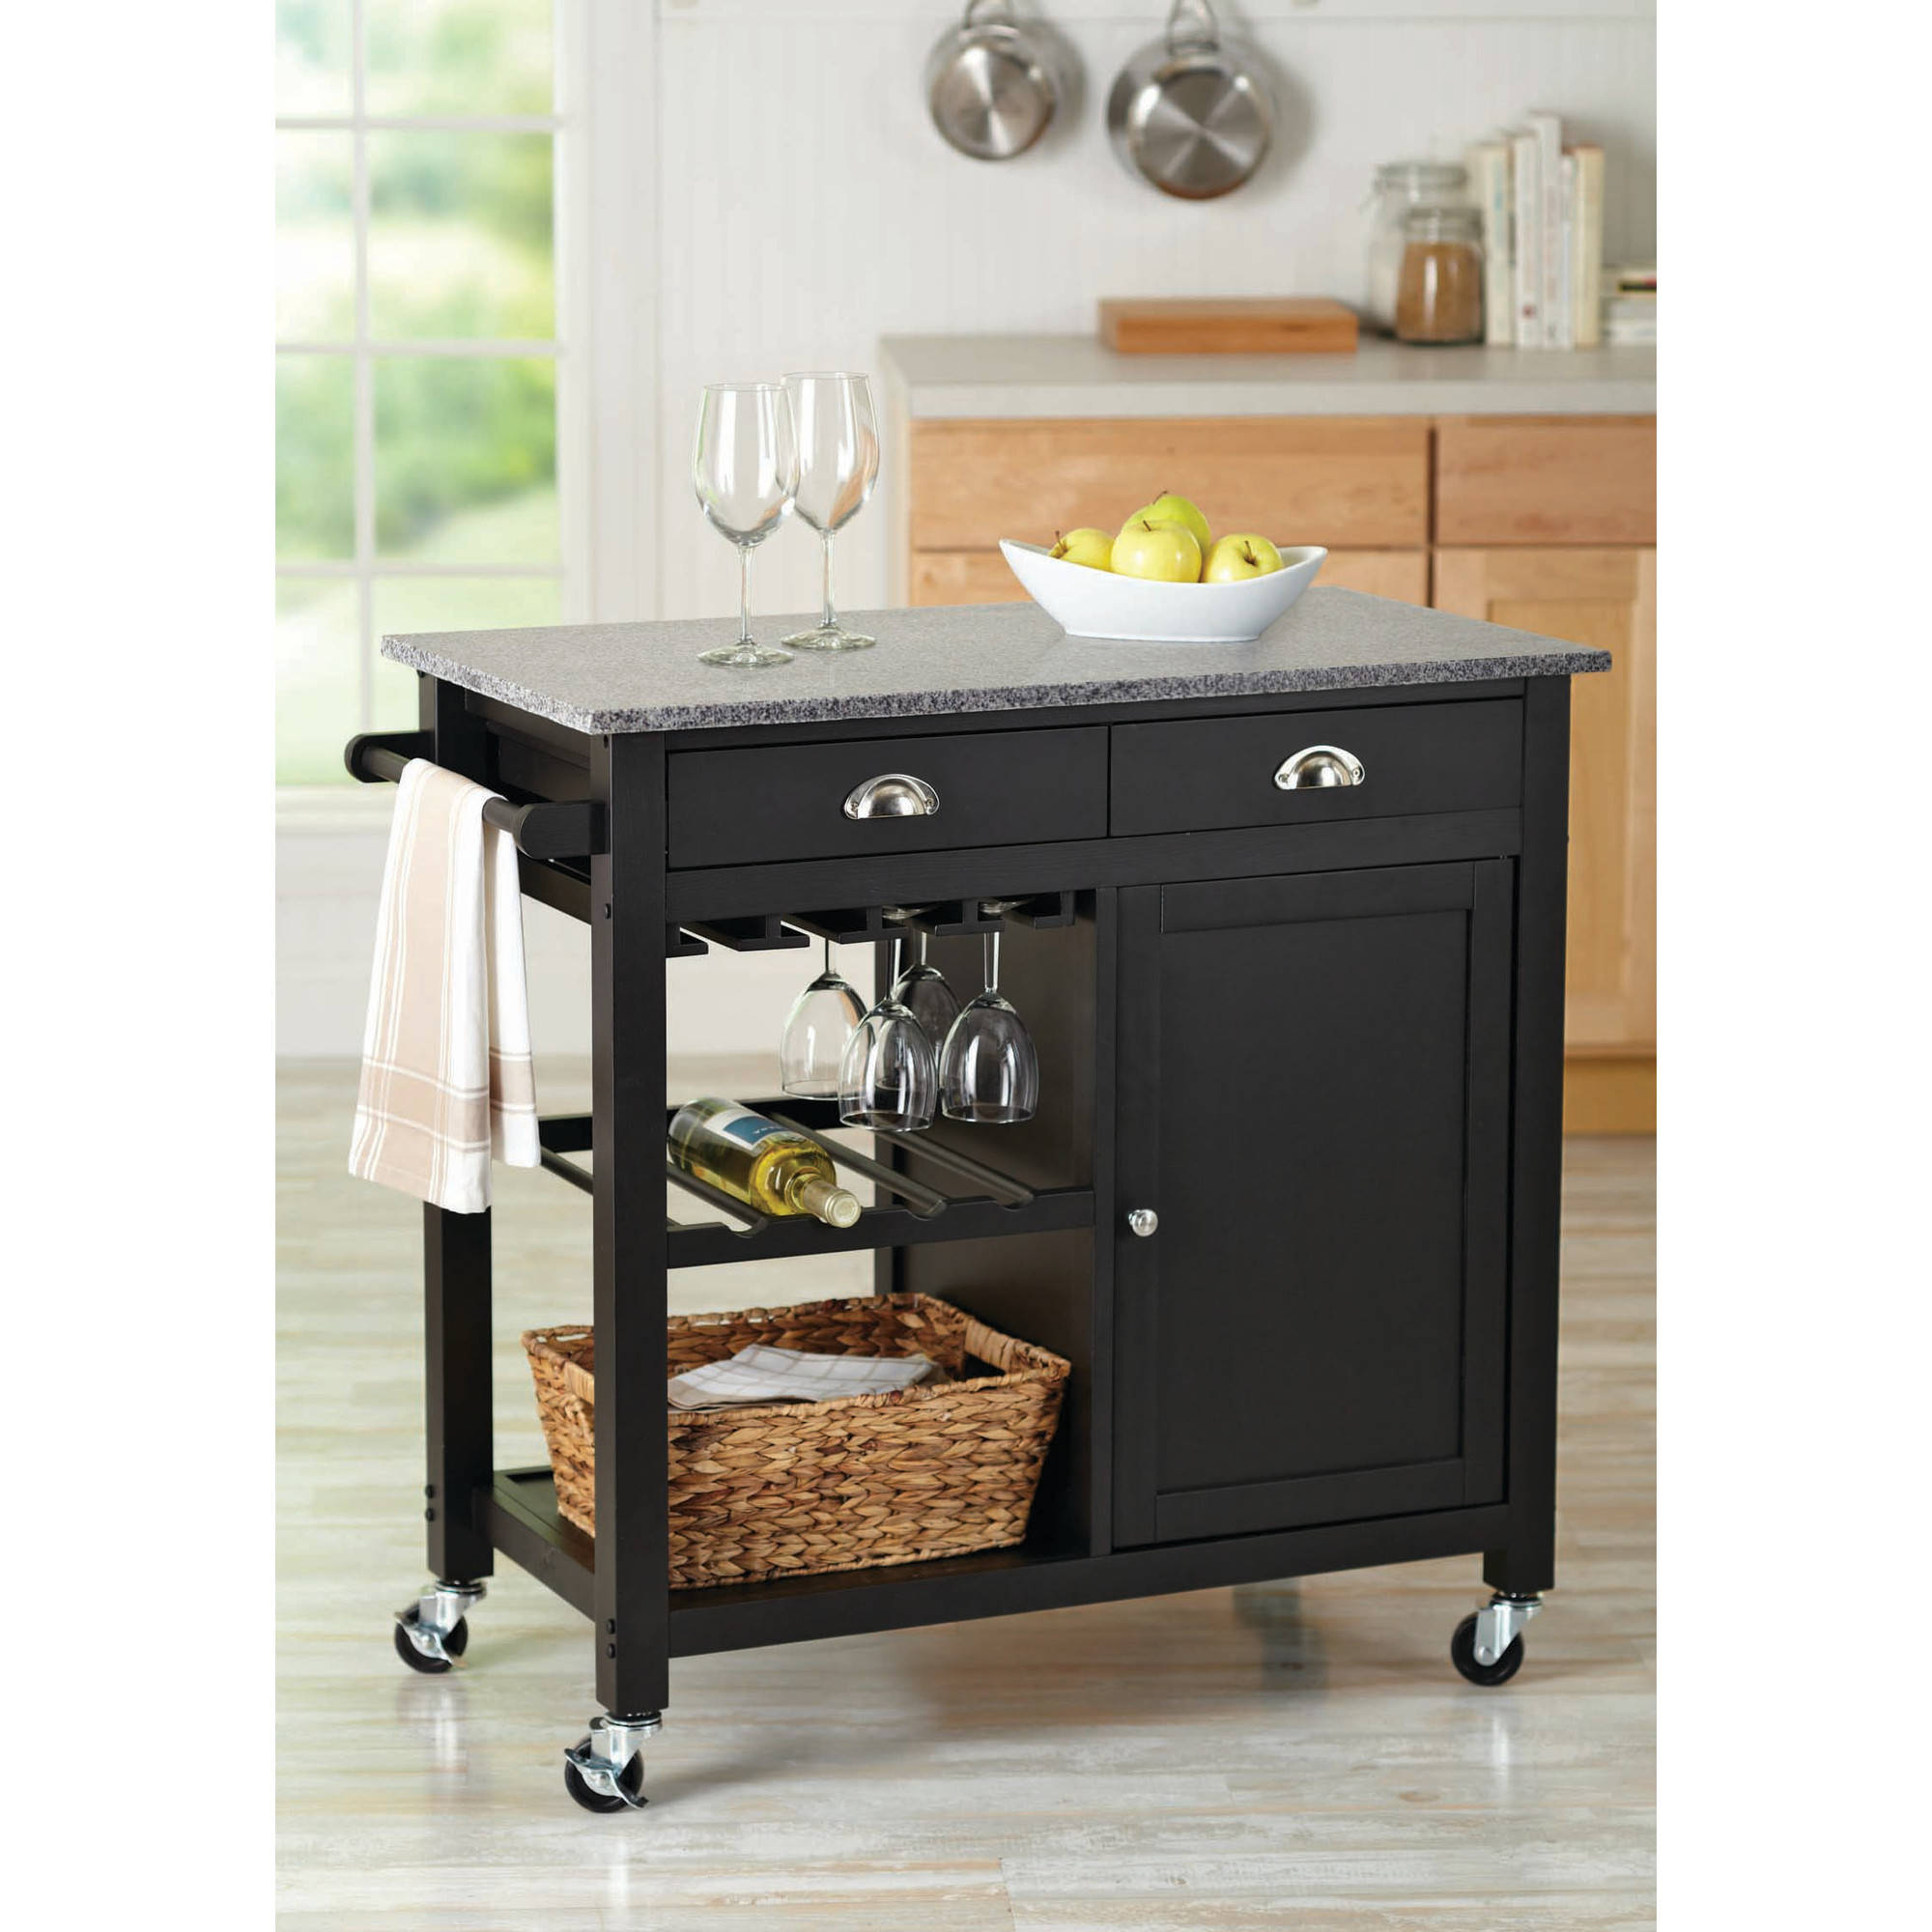 Better Homes And Gardens Deluxe Kitchen Cart/island Black